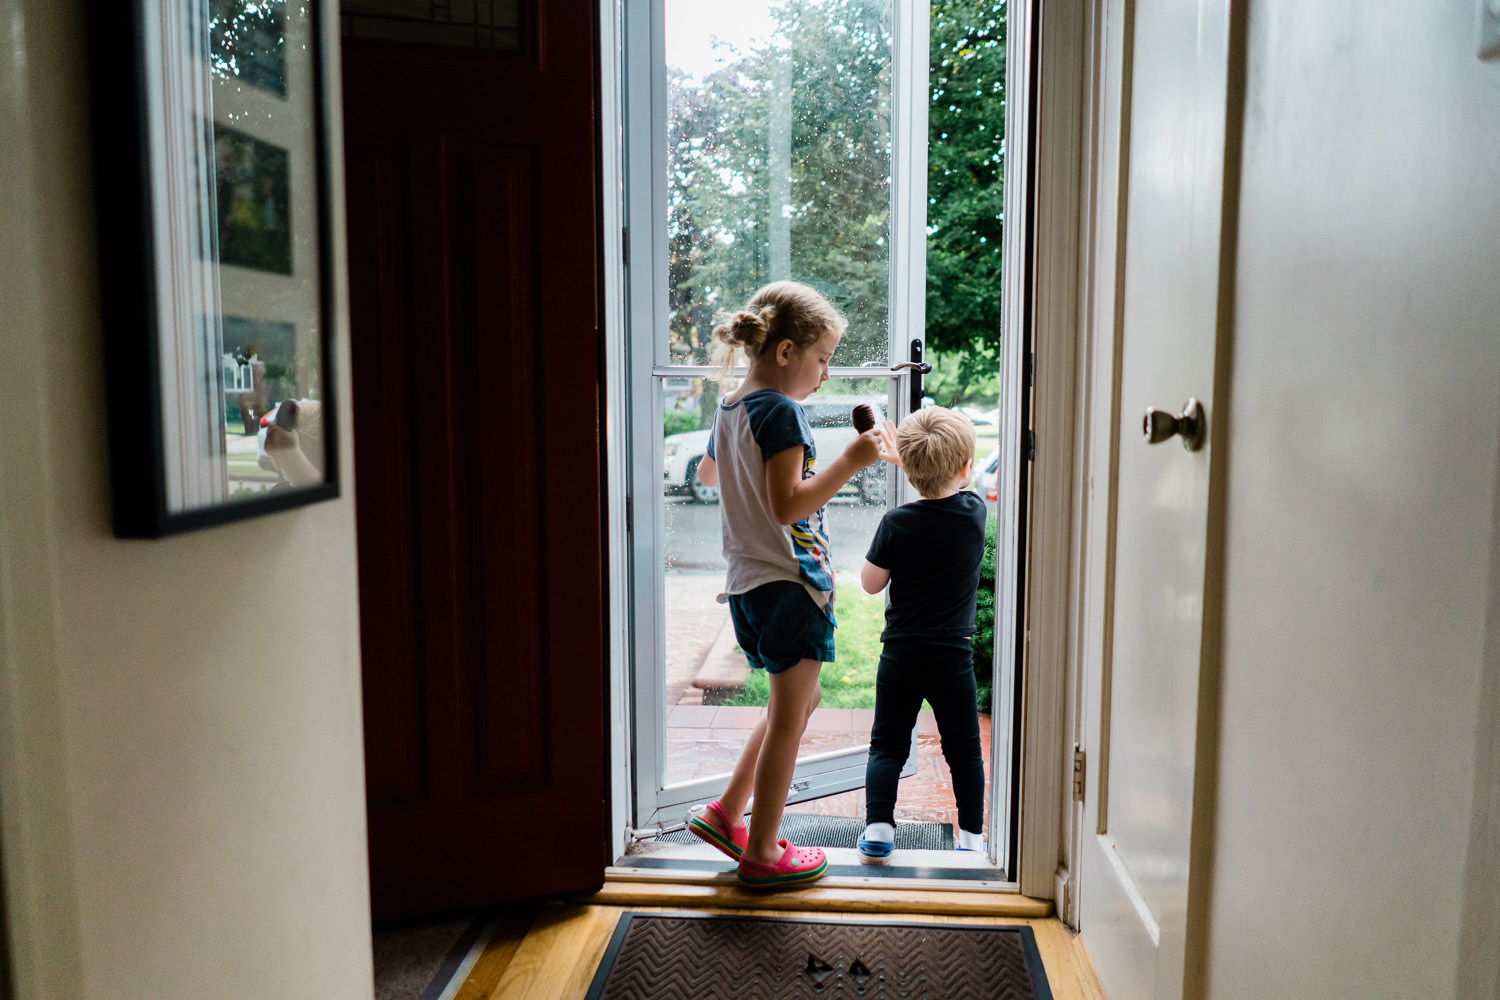 A little boy and girl slip outside their front door.